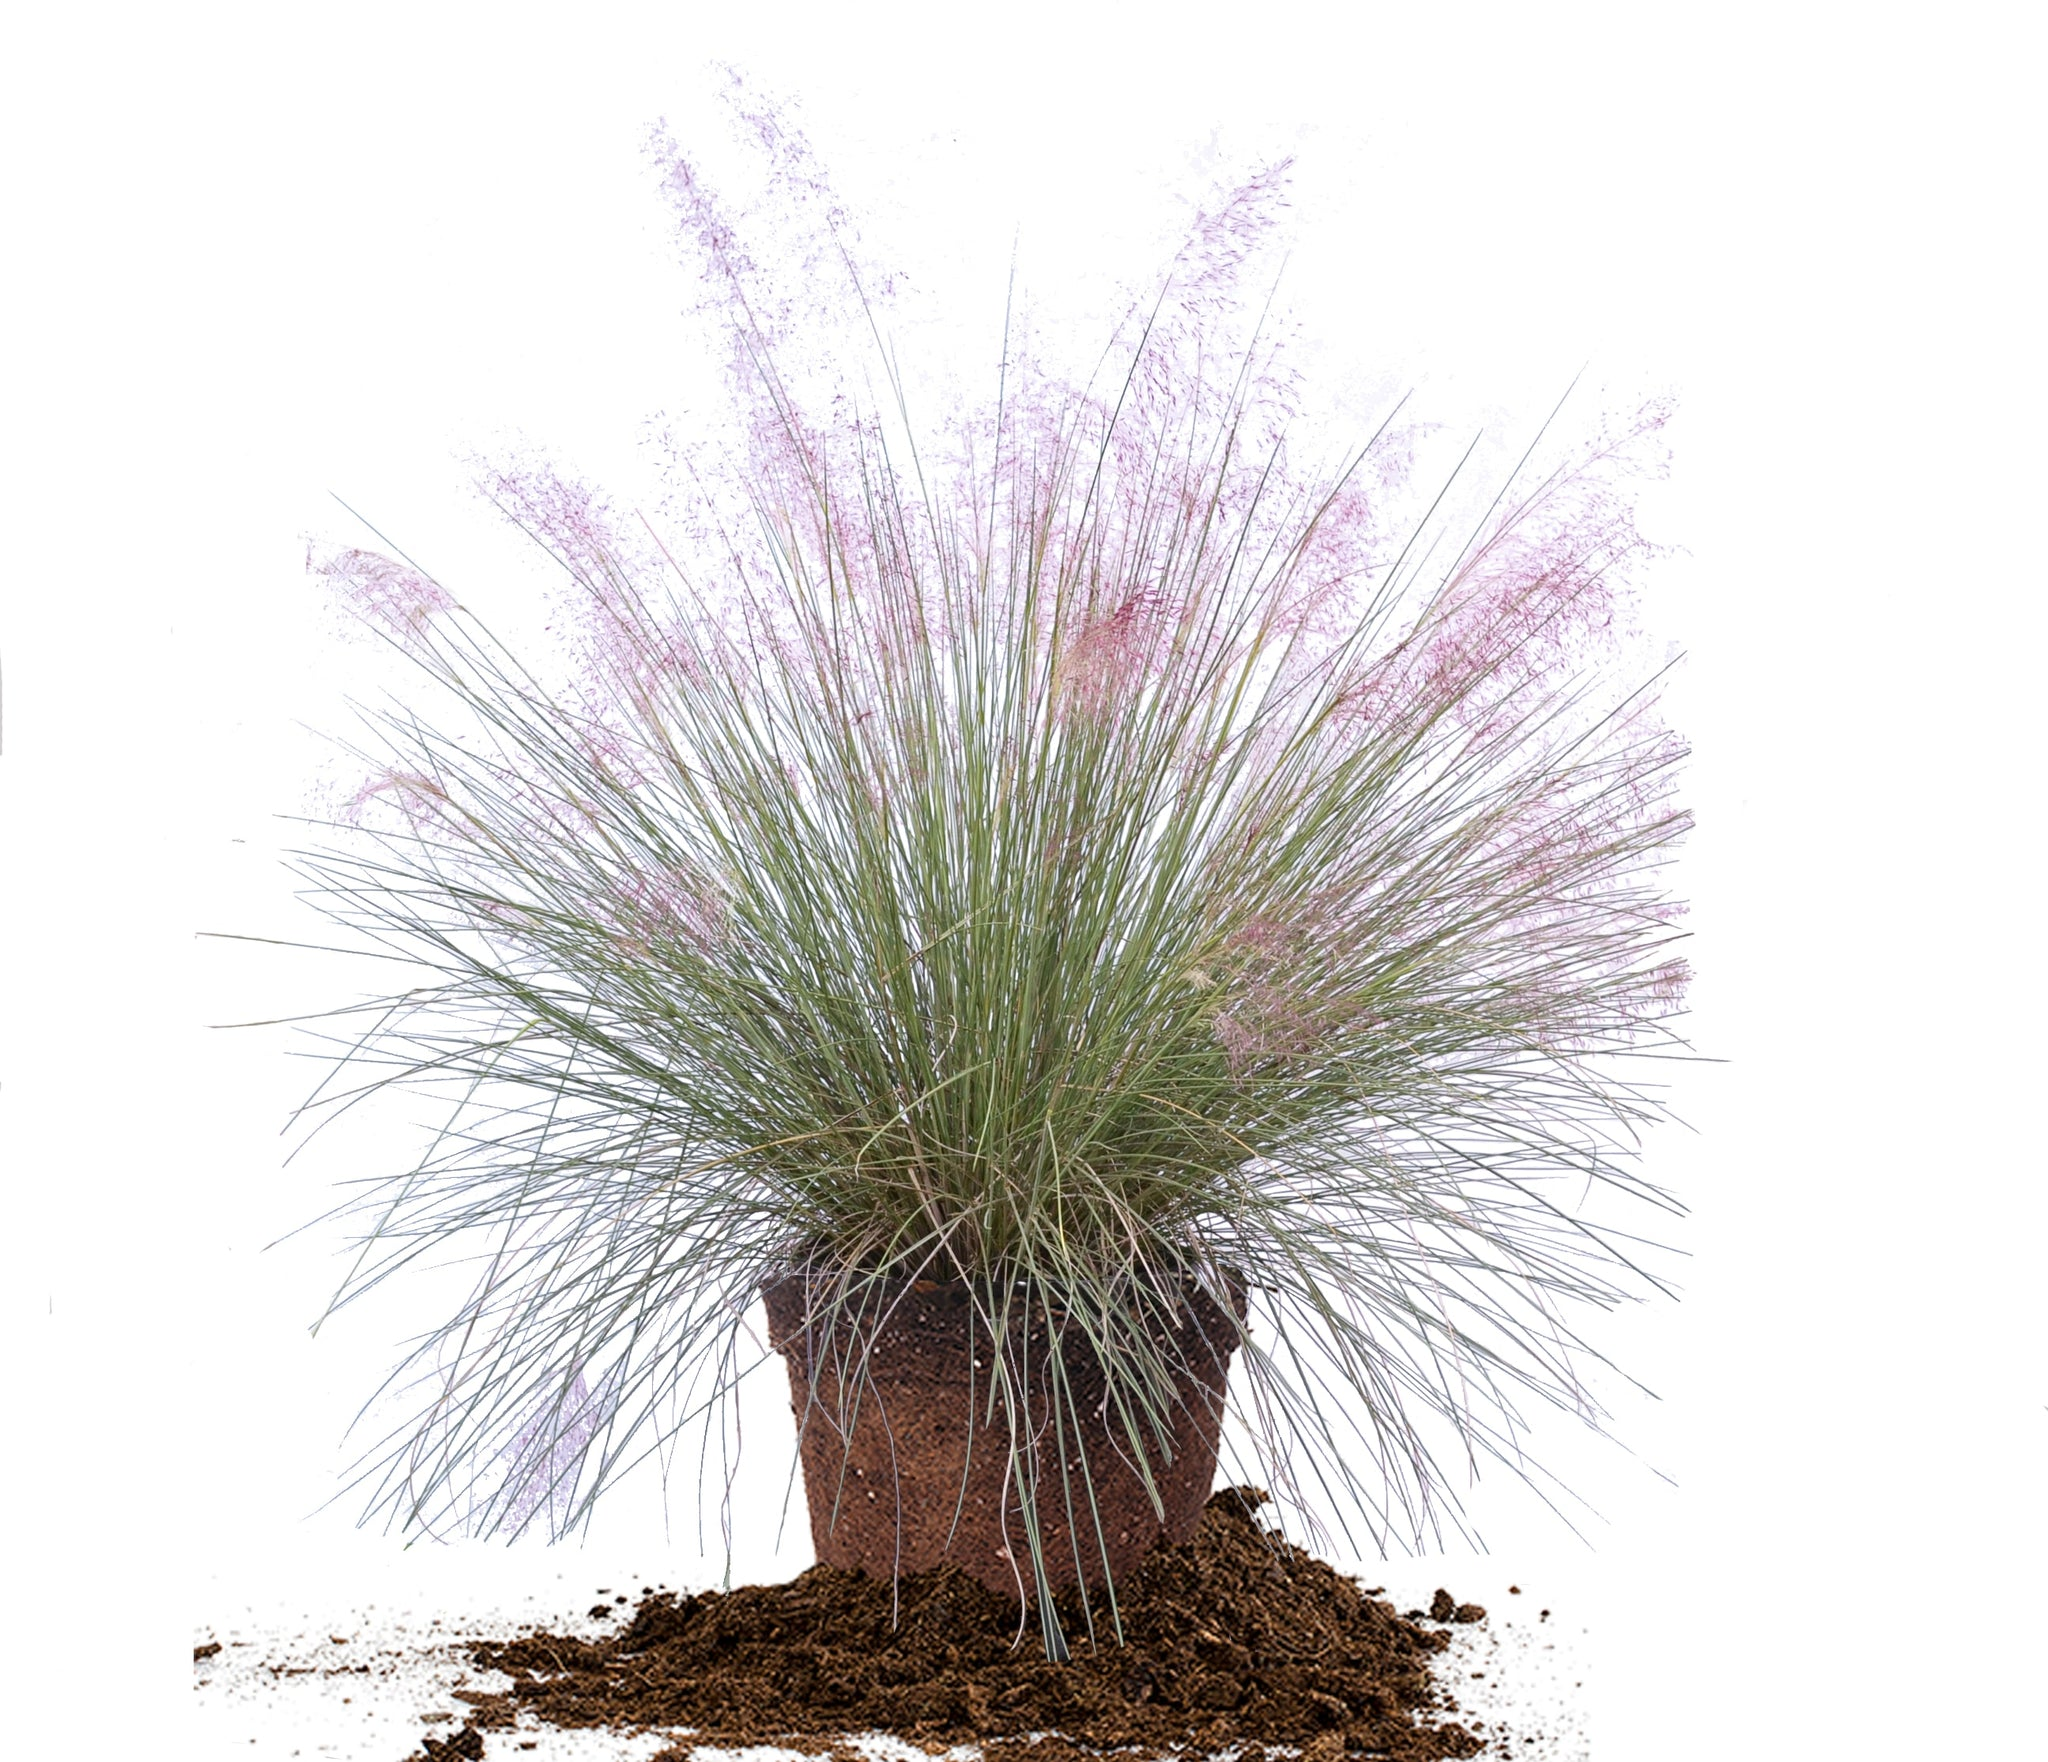 Muhlenbergia Purple Muhly Muhlenbergia capillaris - Beautiful hedge-like plant with flowers that are very feathery and add a cloudlike appearance to the top of the grass.